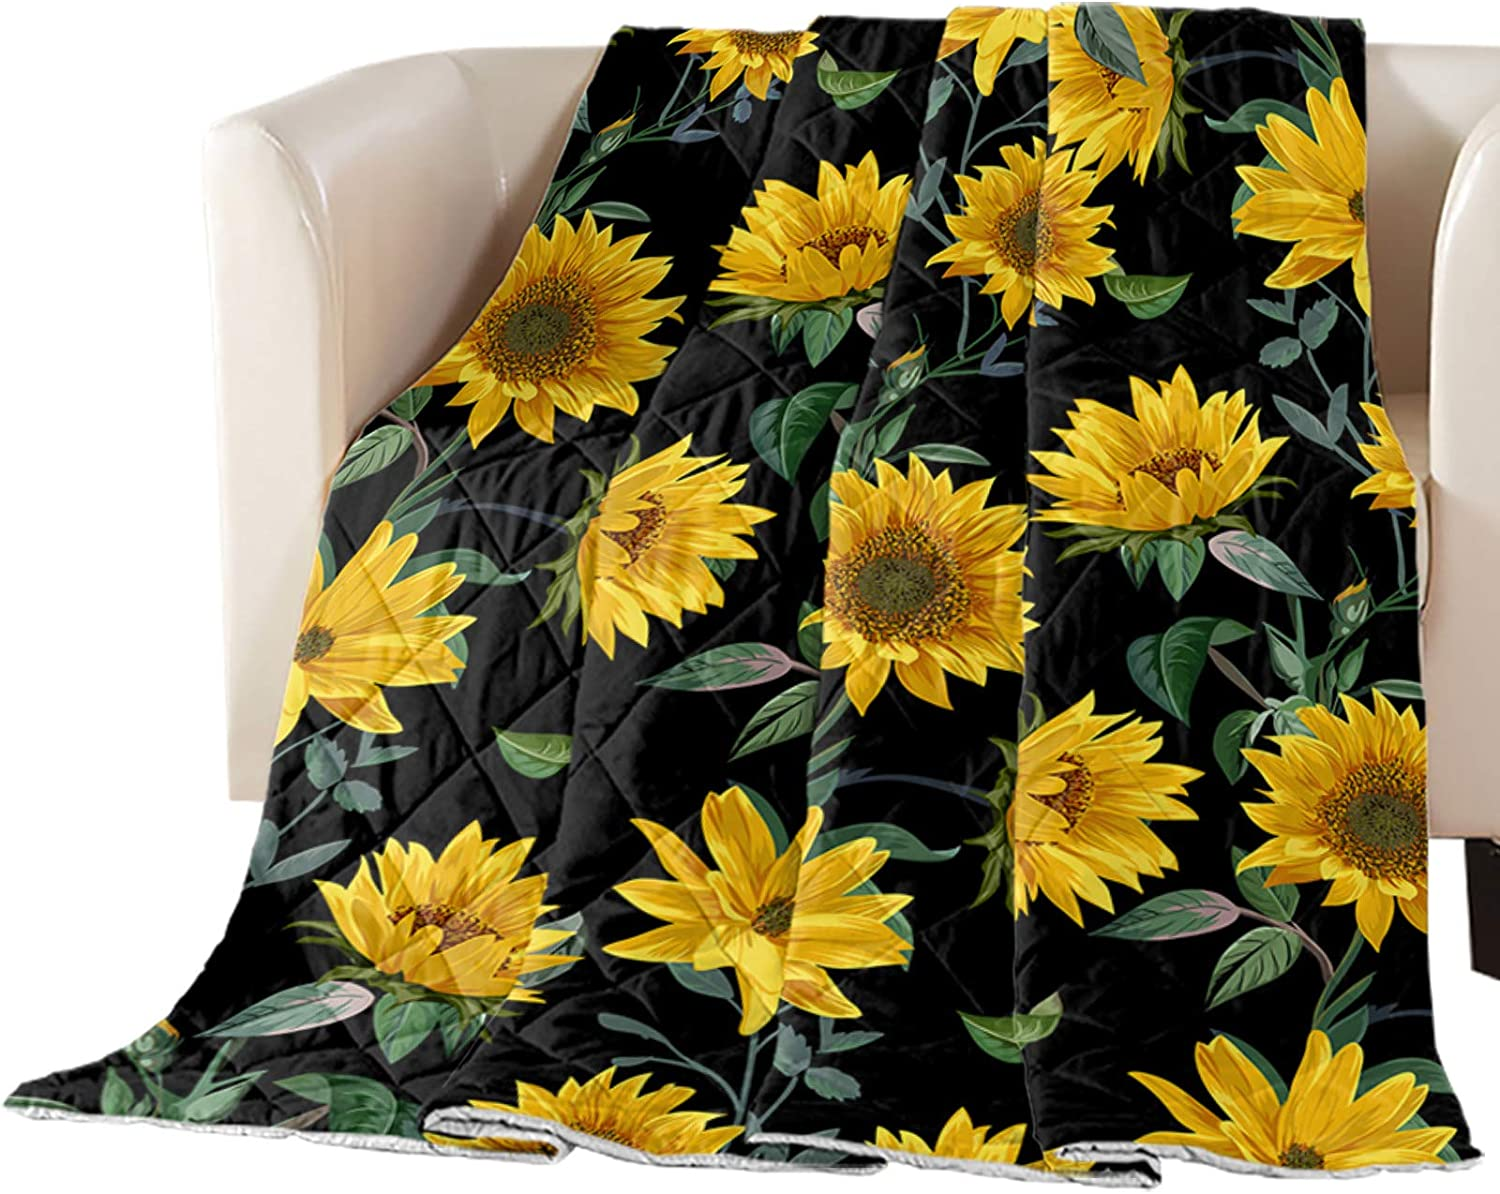 Arts Charlotte Mall Print Full Size Quilt Max 51% OFF Throw Soft Bedspread Lightweight All